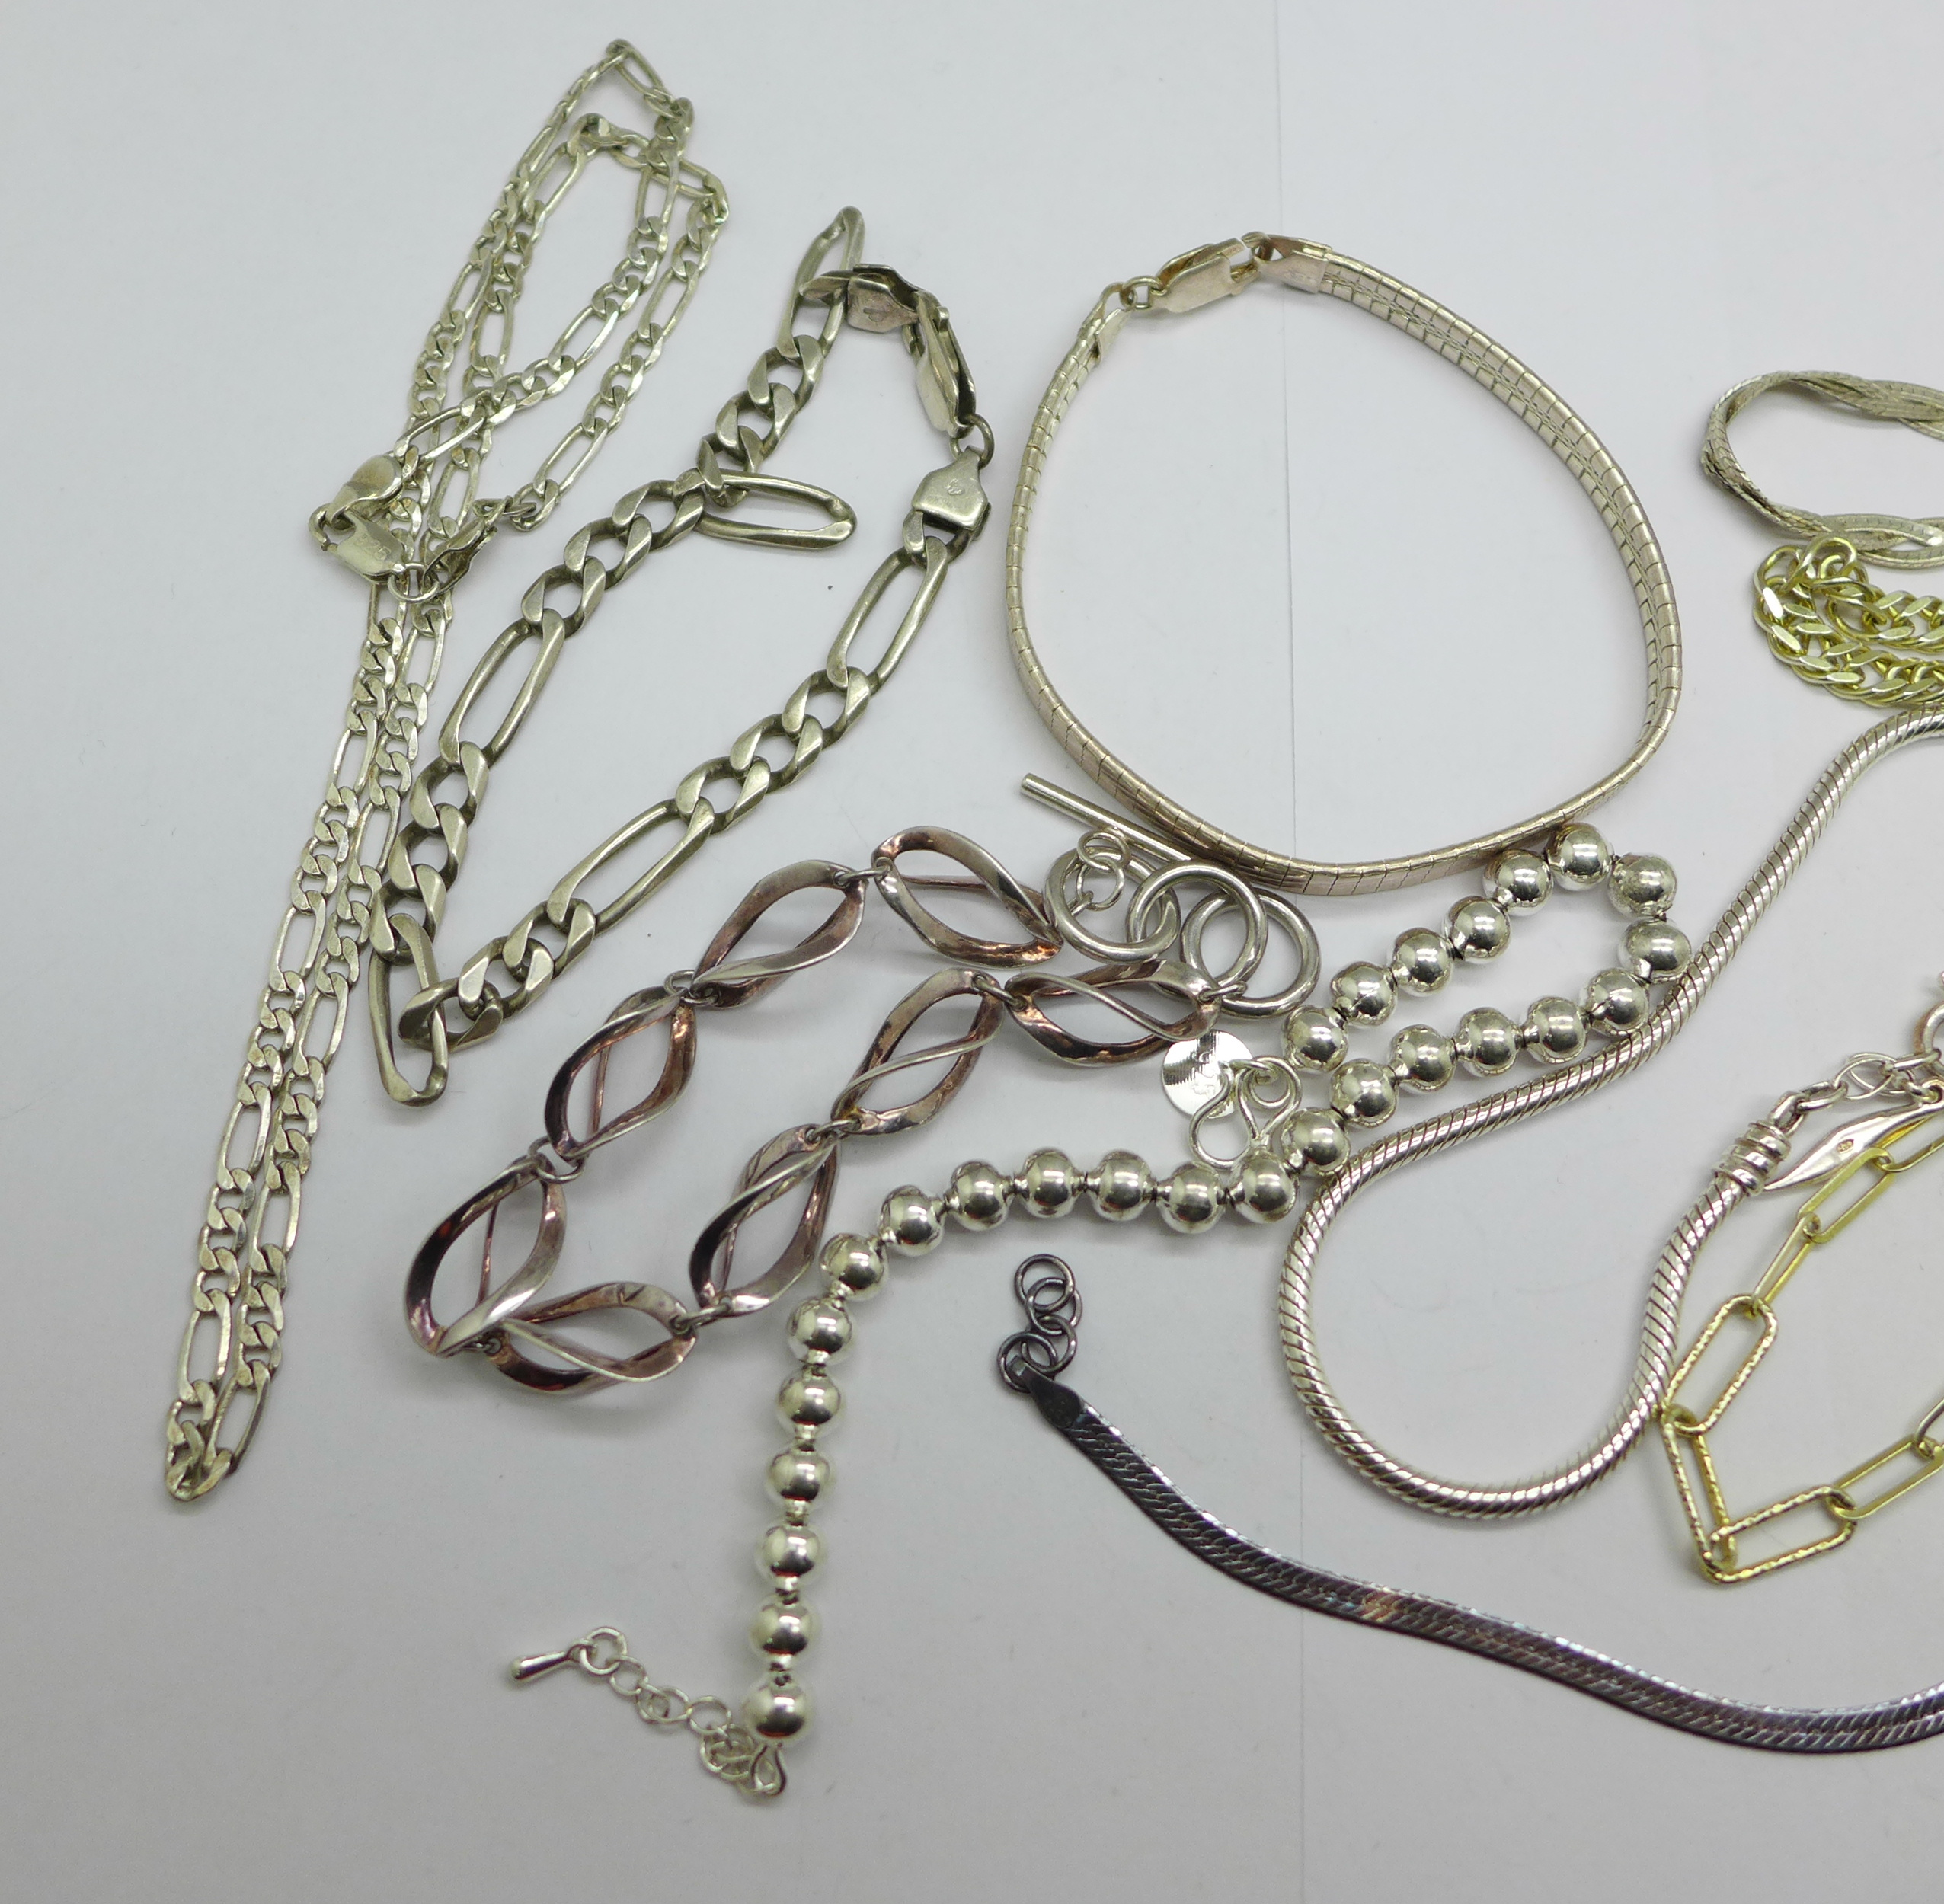 Ten silver bracelets and a silver necklace, 95g - Image 2 of 3